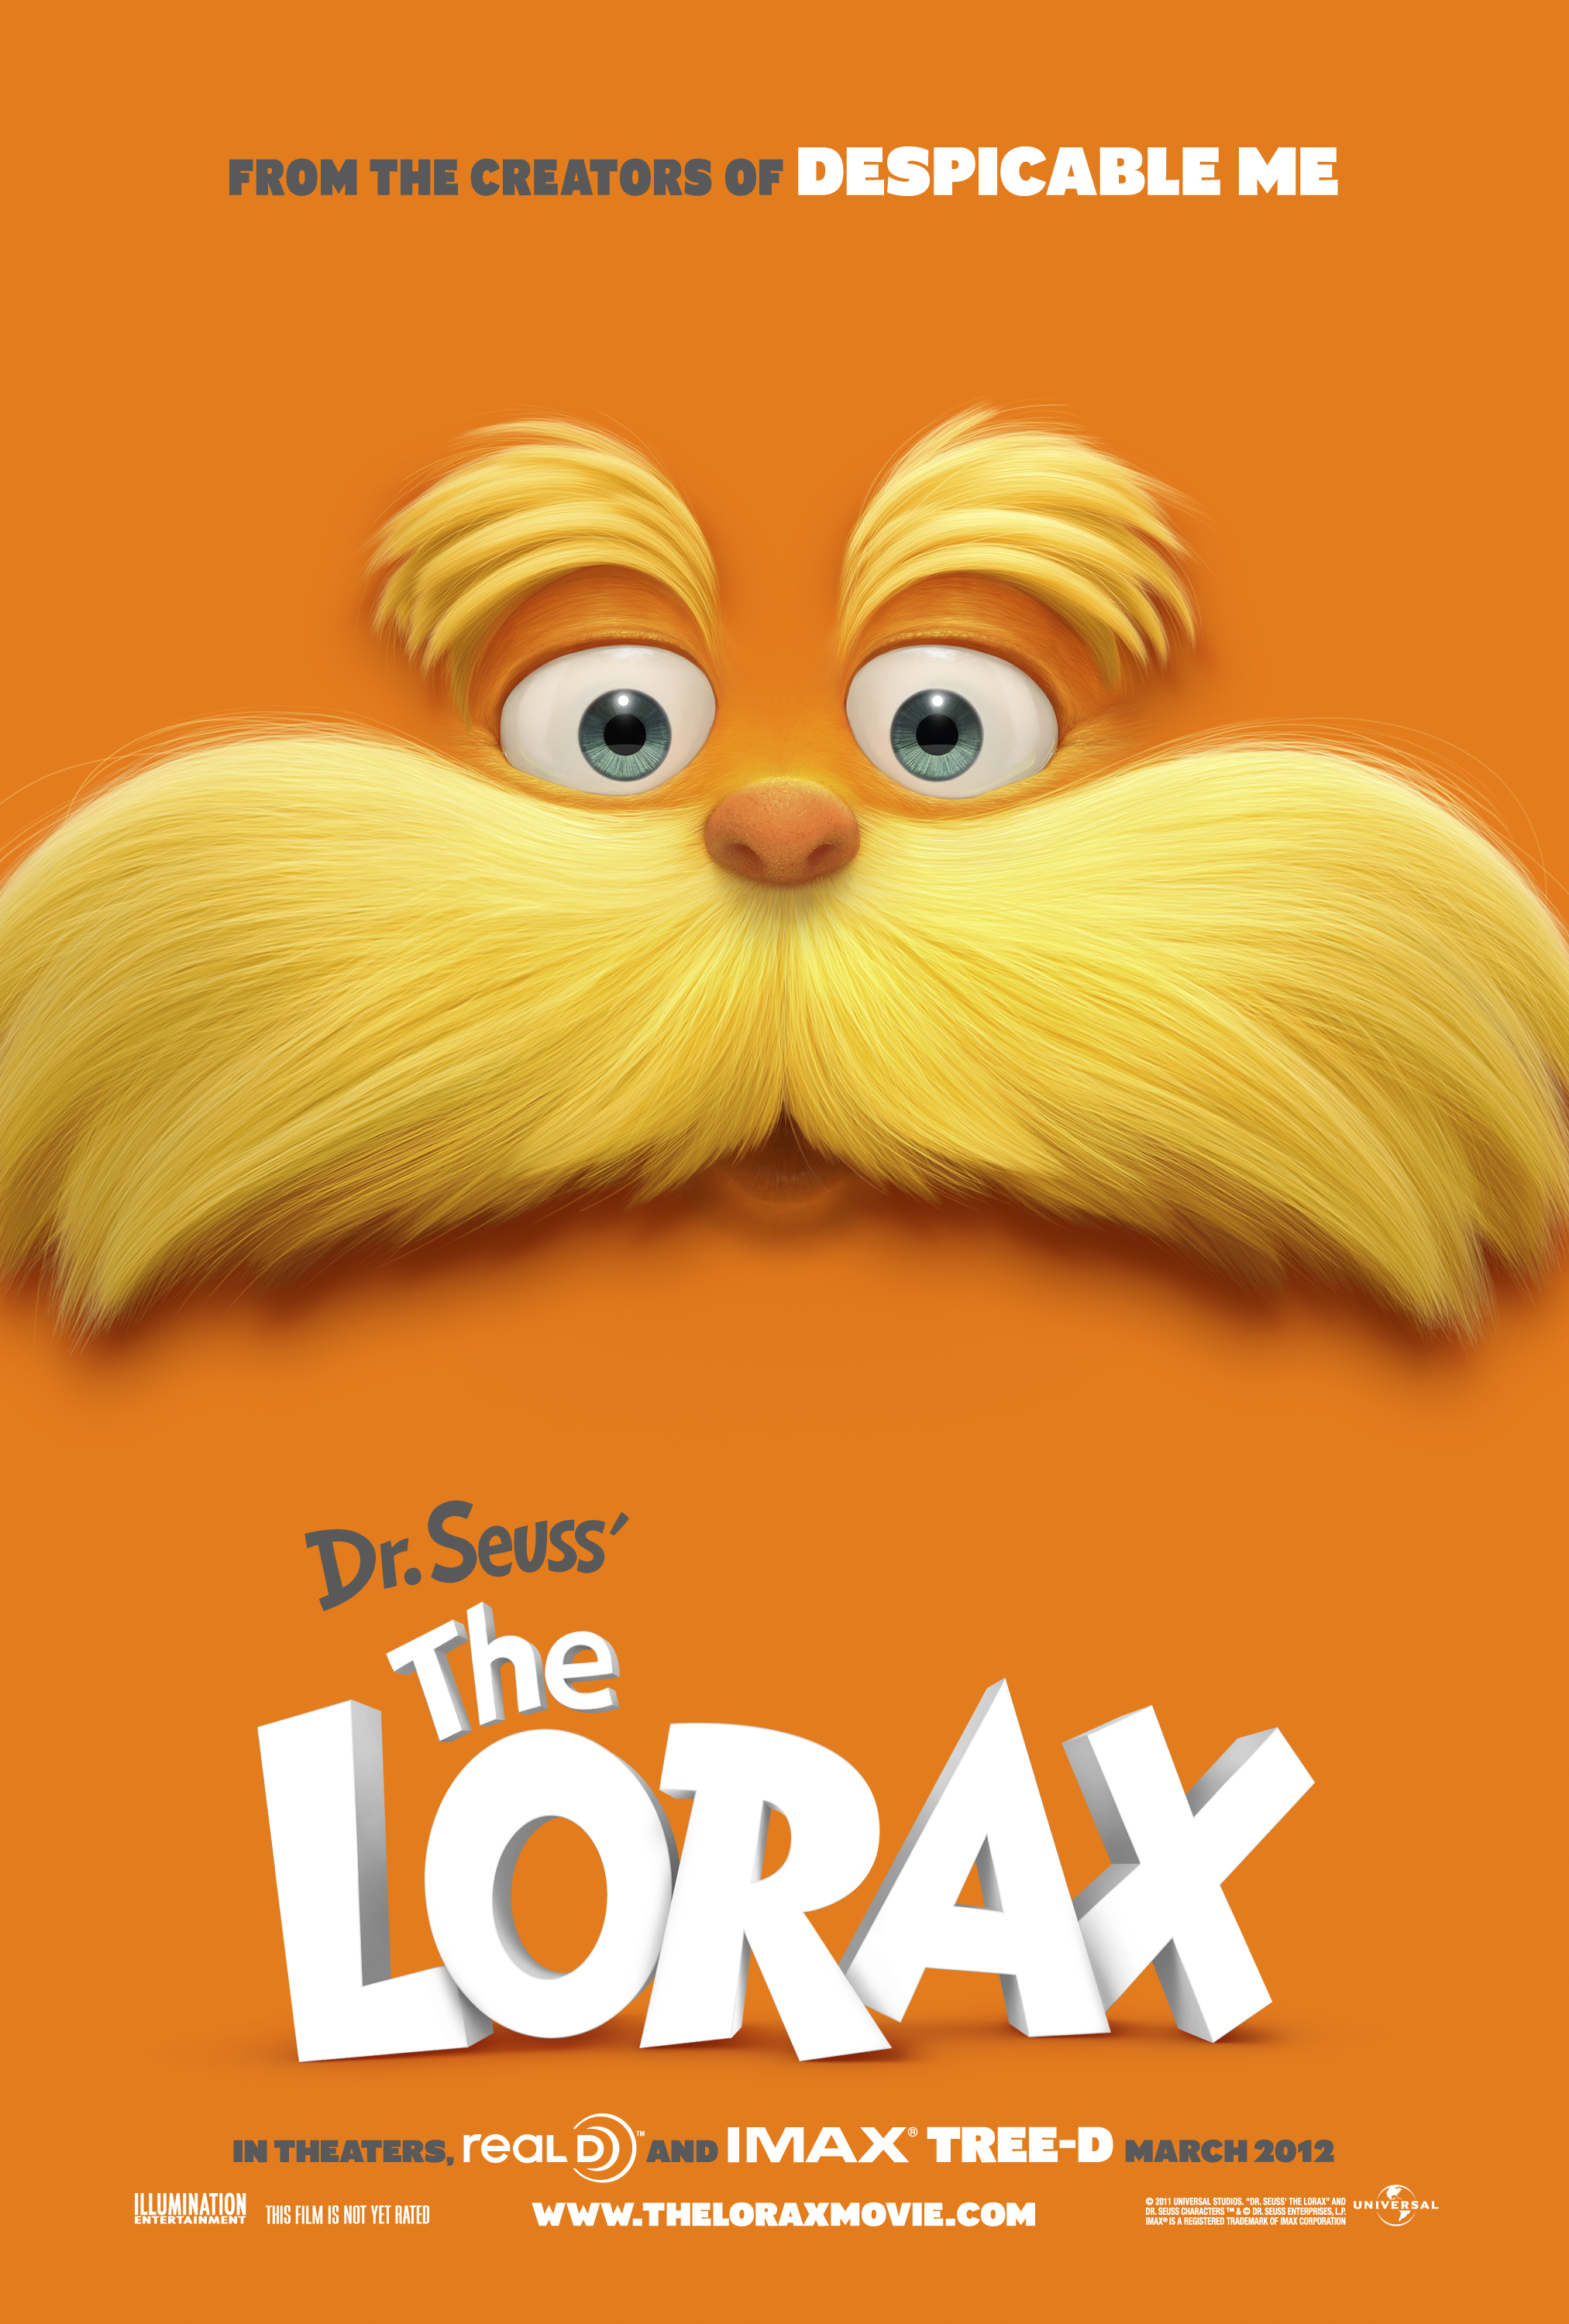 Dr. Seuss' The Lorax #Giveaway